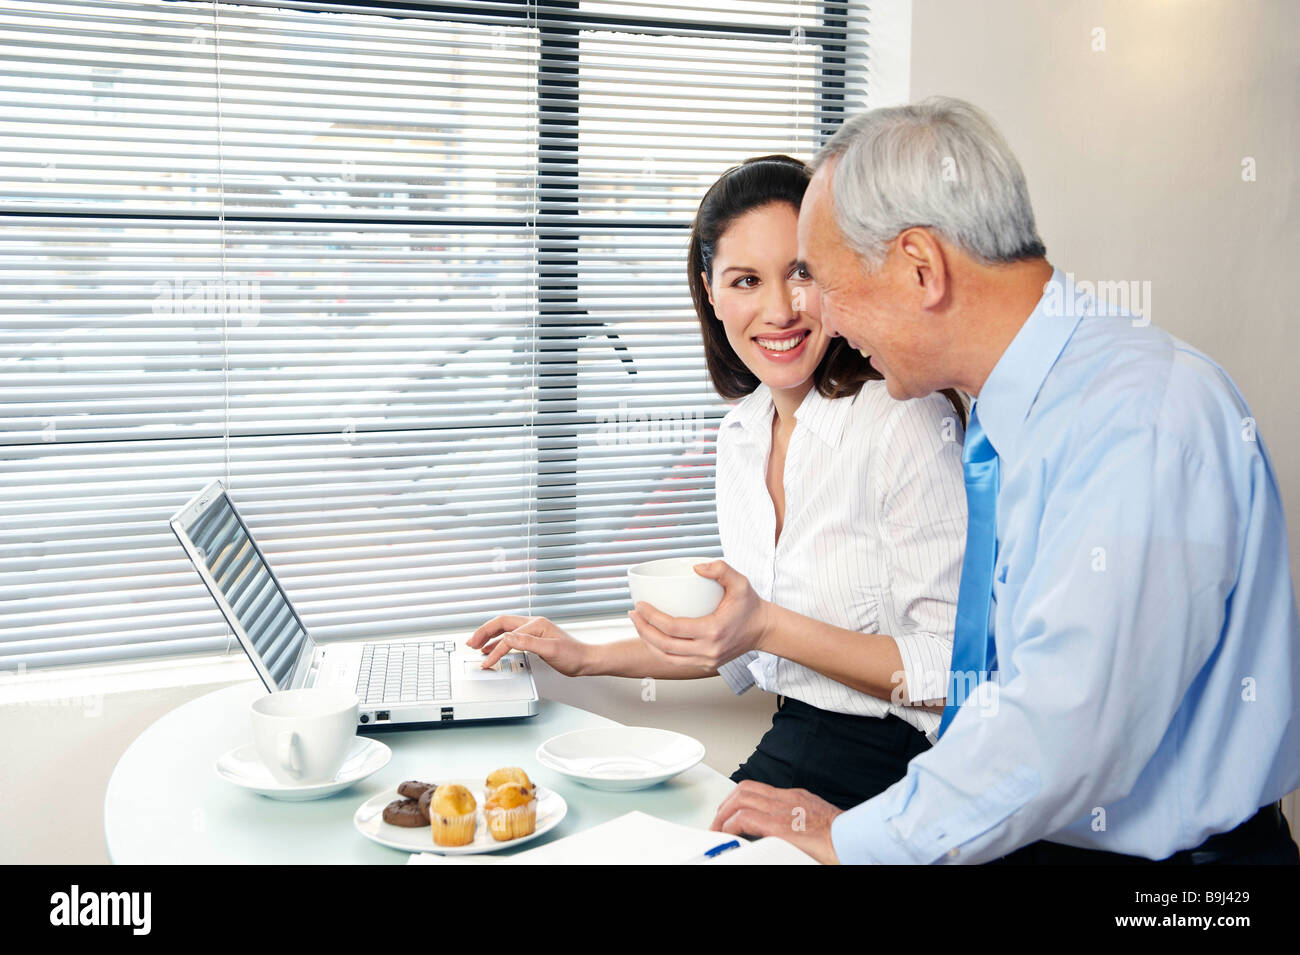 Co-workers in cafe with laptop smiling - Stock Image